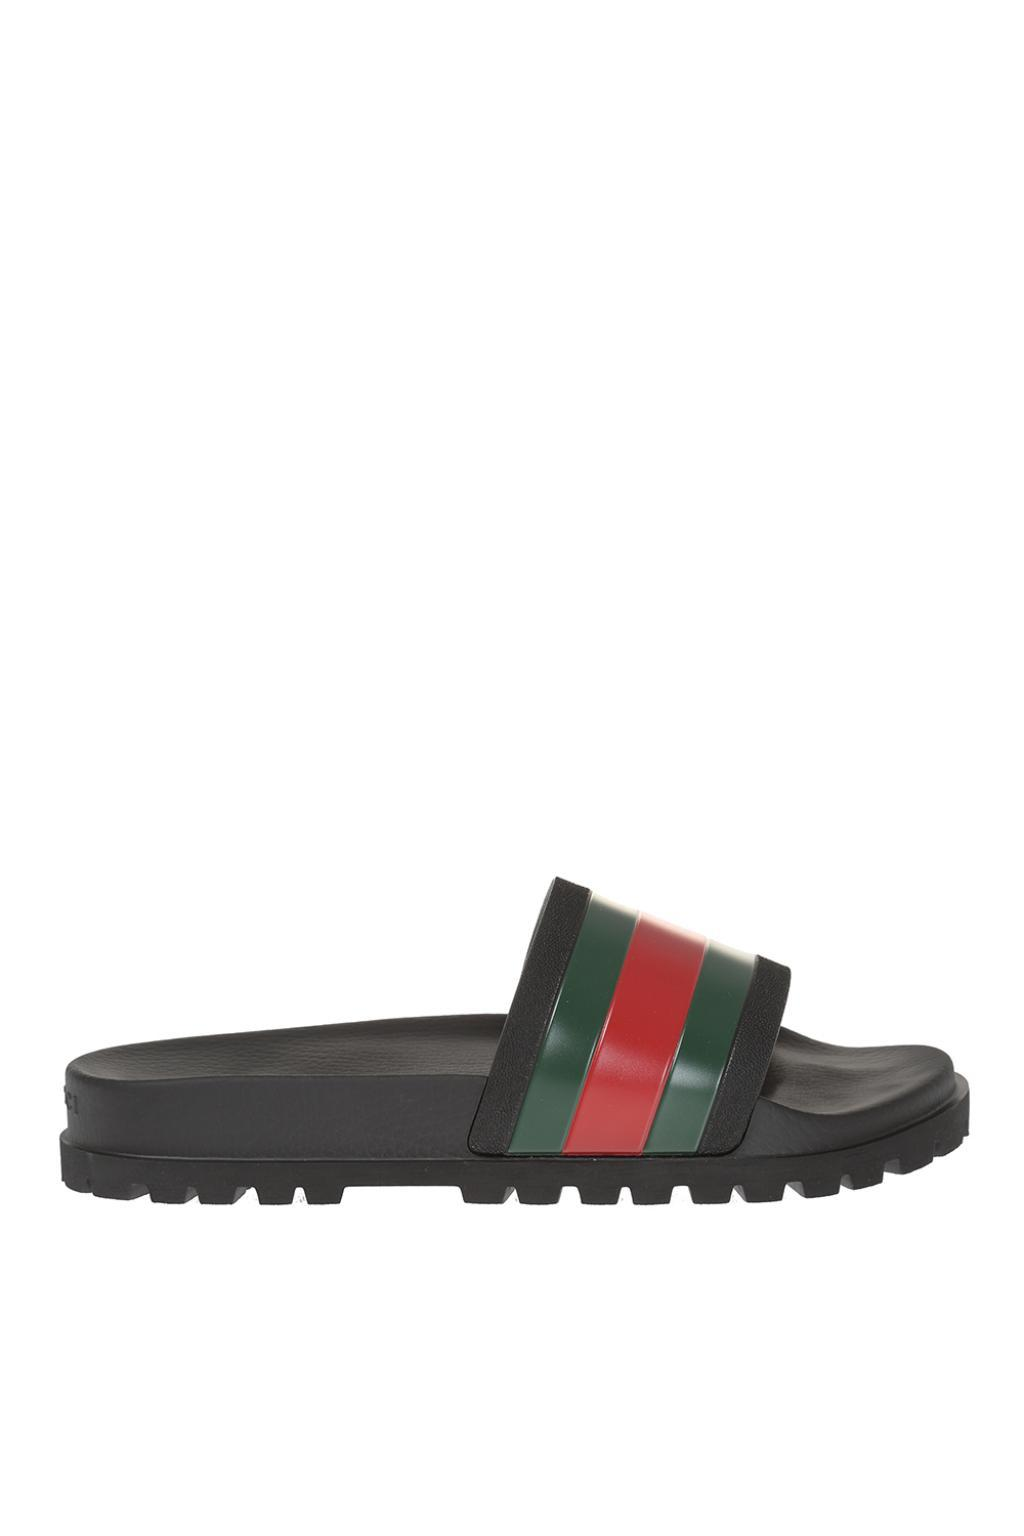 a434e4d6d25f55 Lyst - Gucci Striped Web Rubber Slides in Black for Men - Save 30%